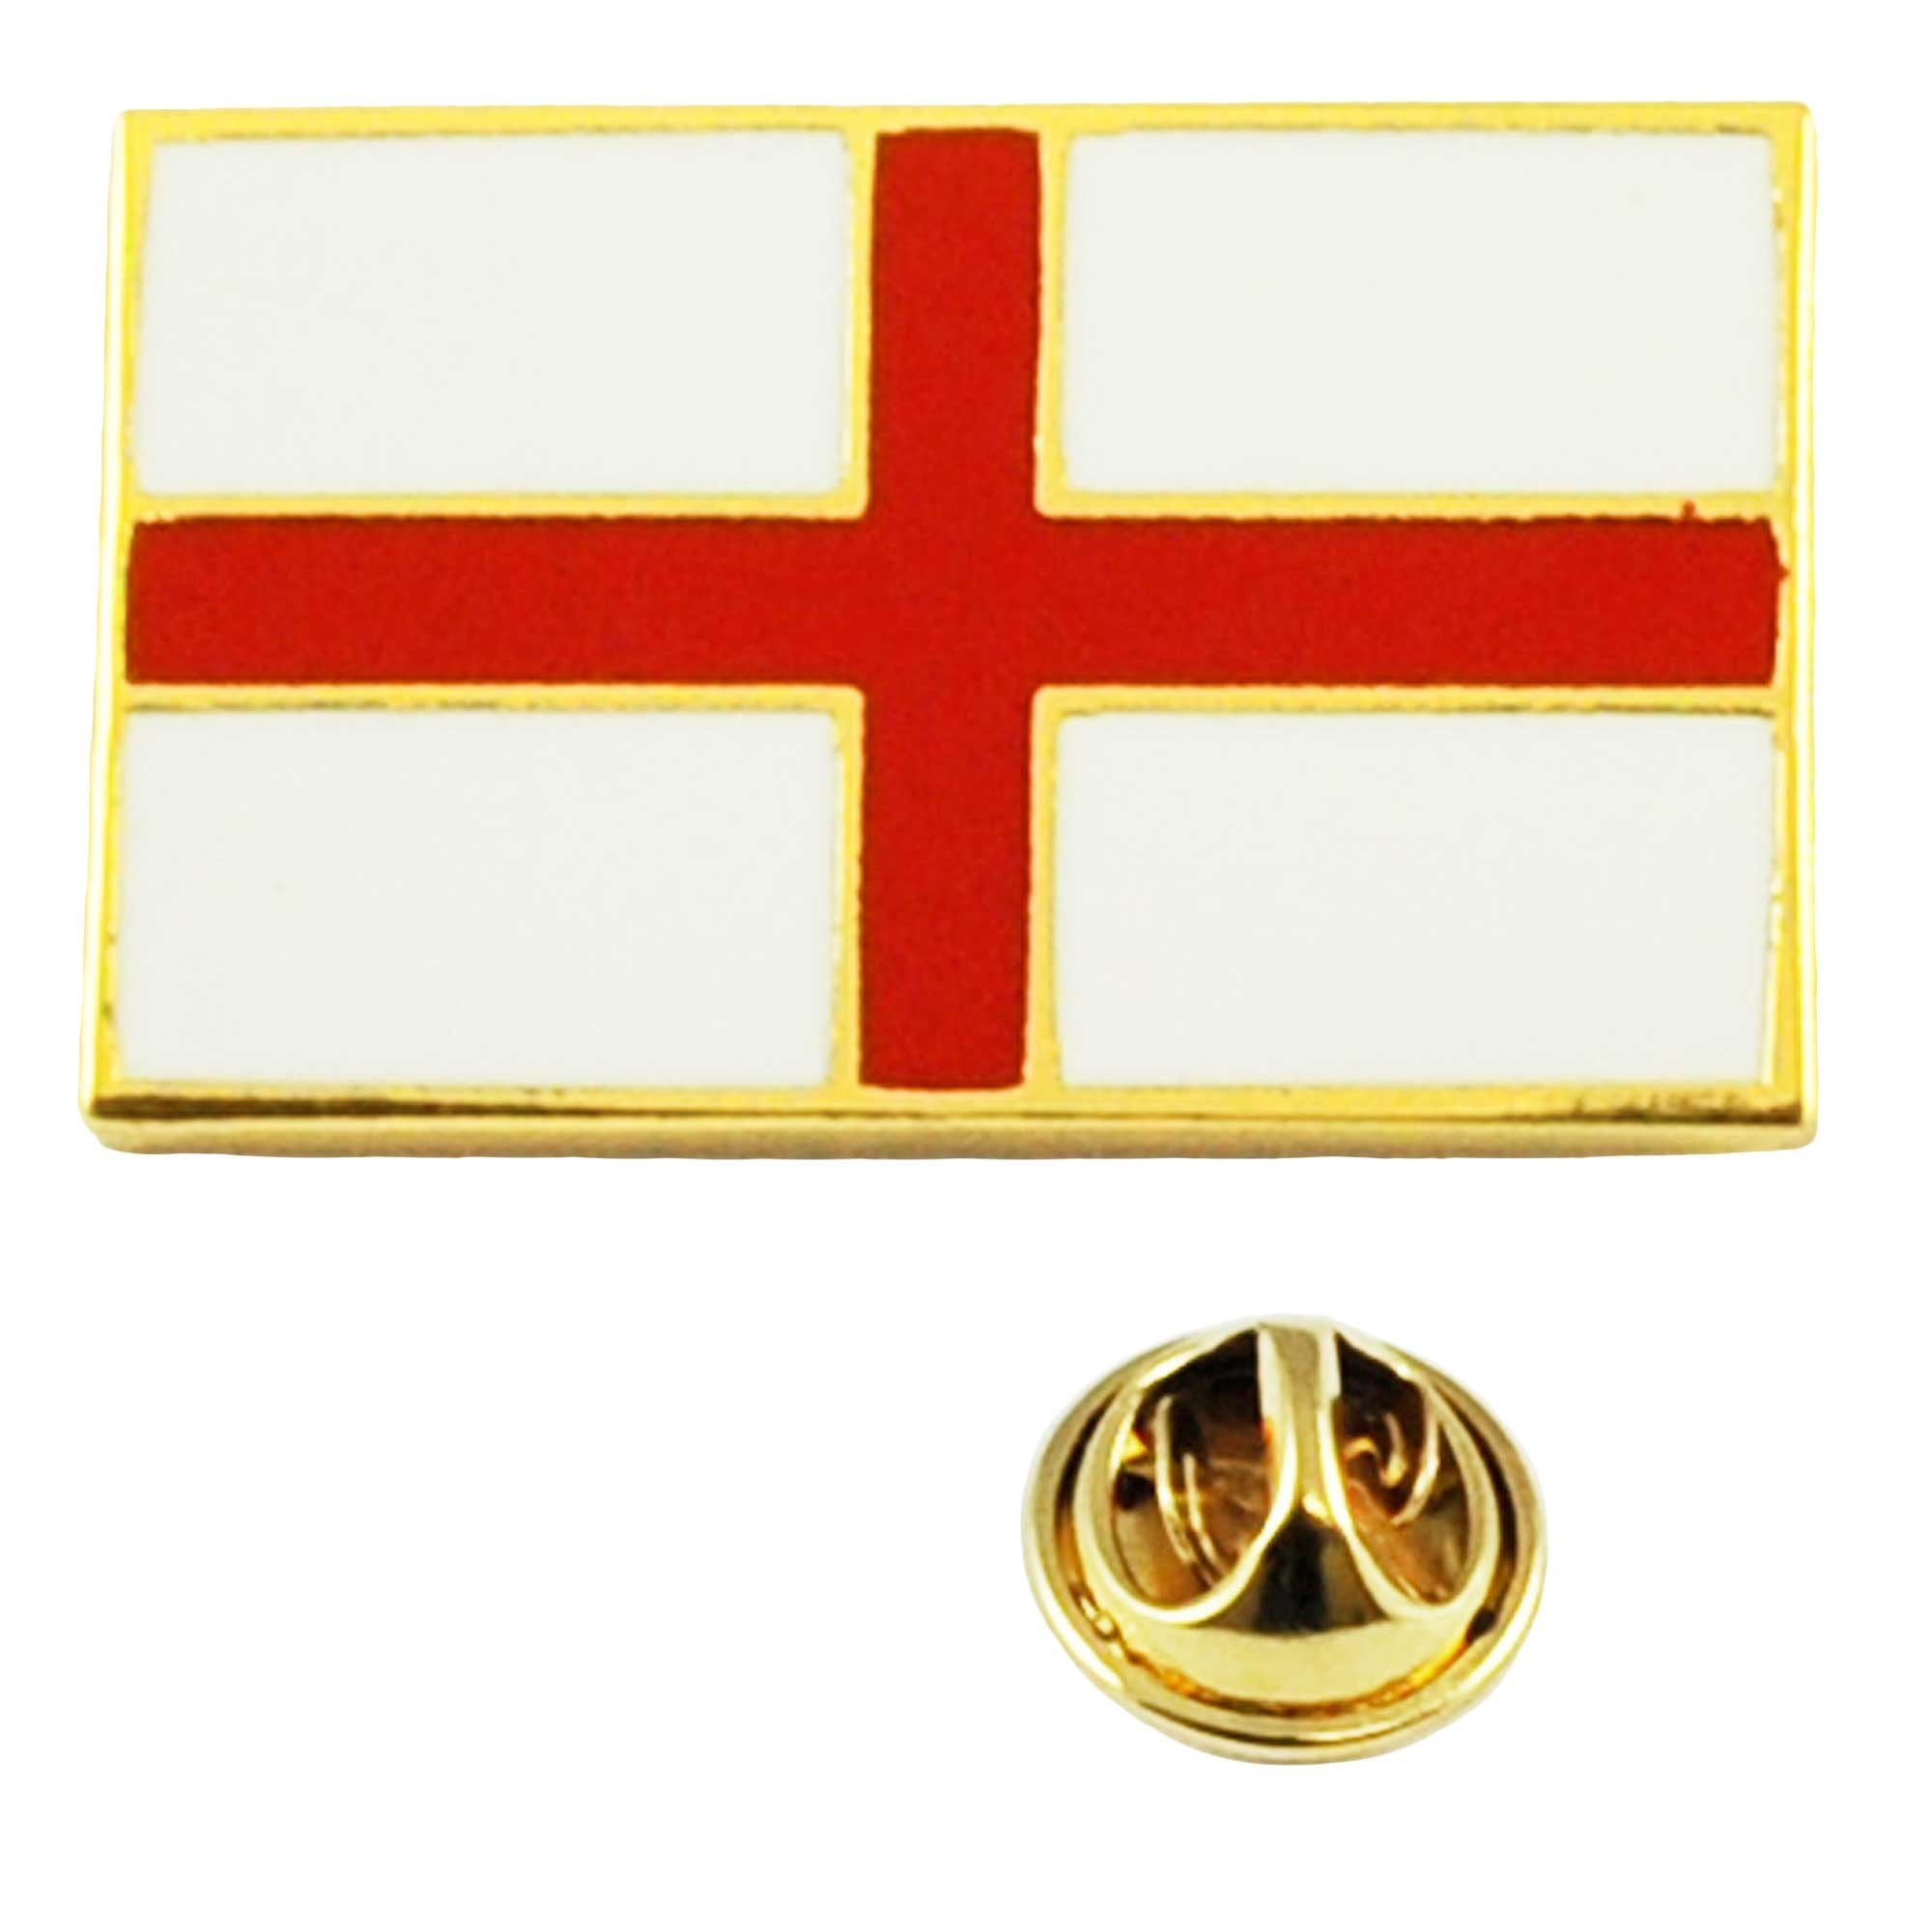 Pack of 3 England St George Cross Waving World Flag Lapel Pin Badges; Three Patriotic Country Hat Lapel Pins